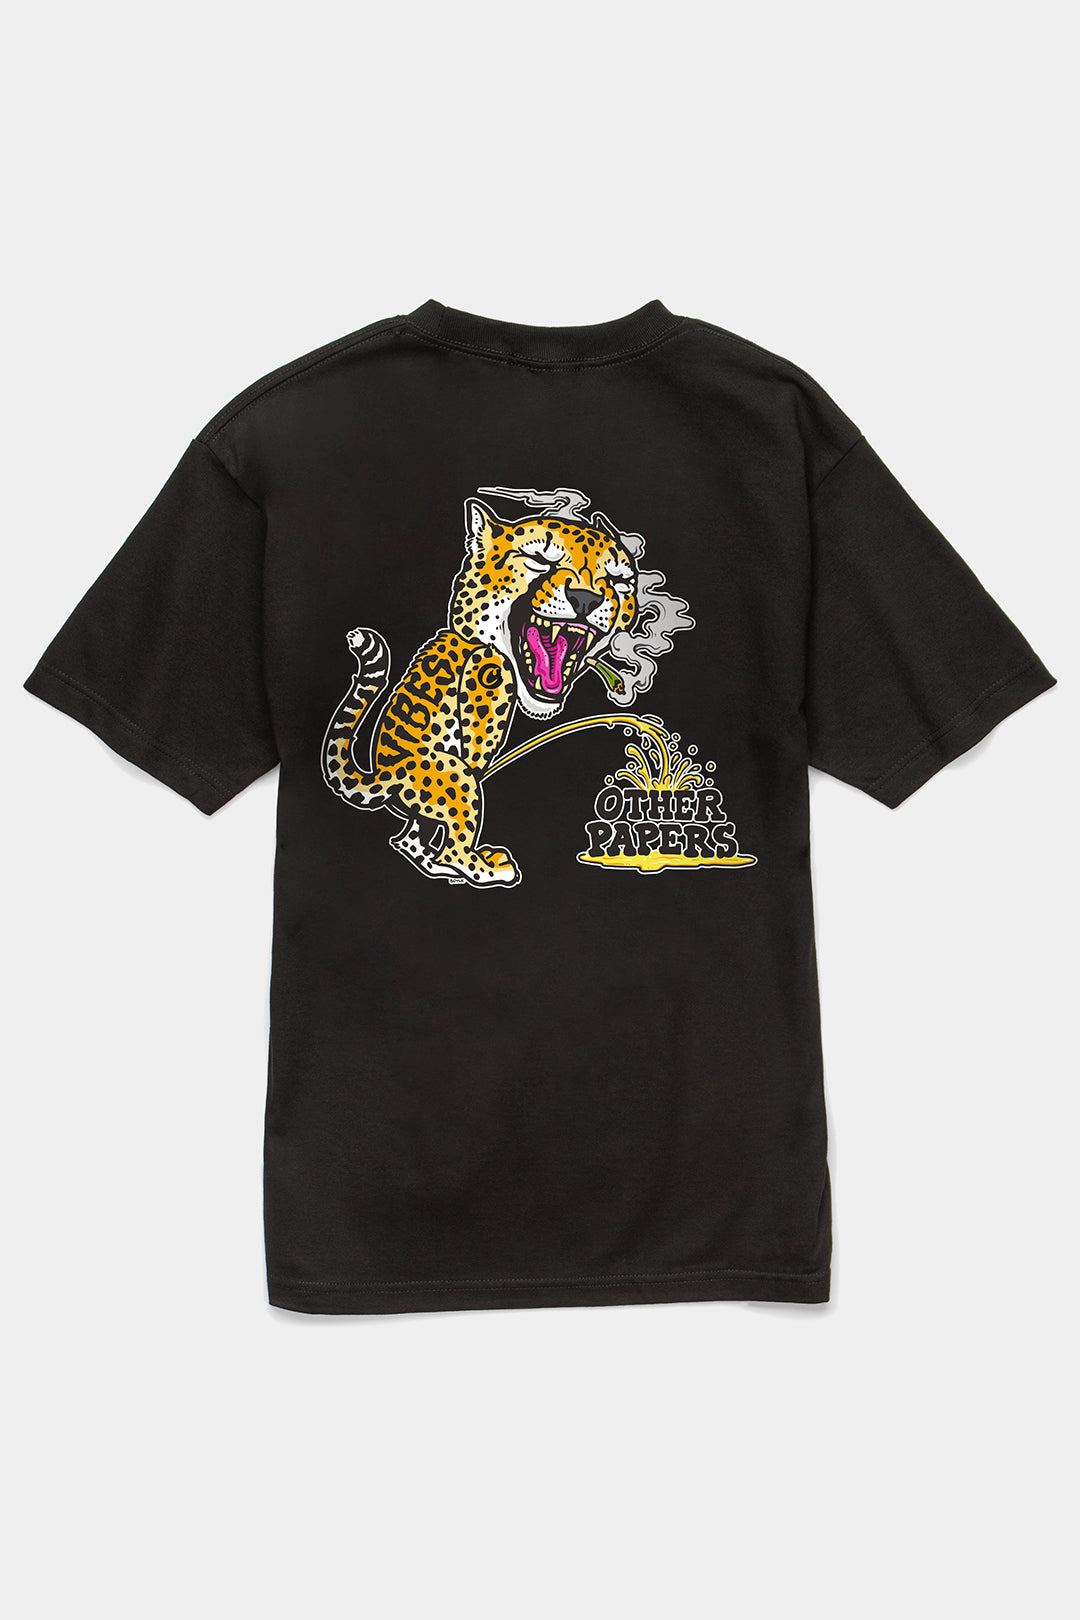 VIBES Cheetah Collection Black T-Shirt